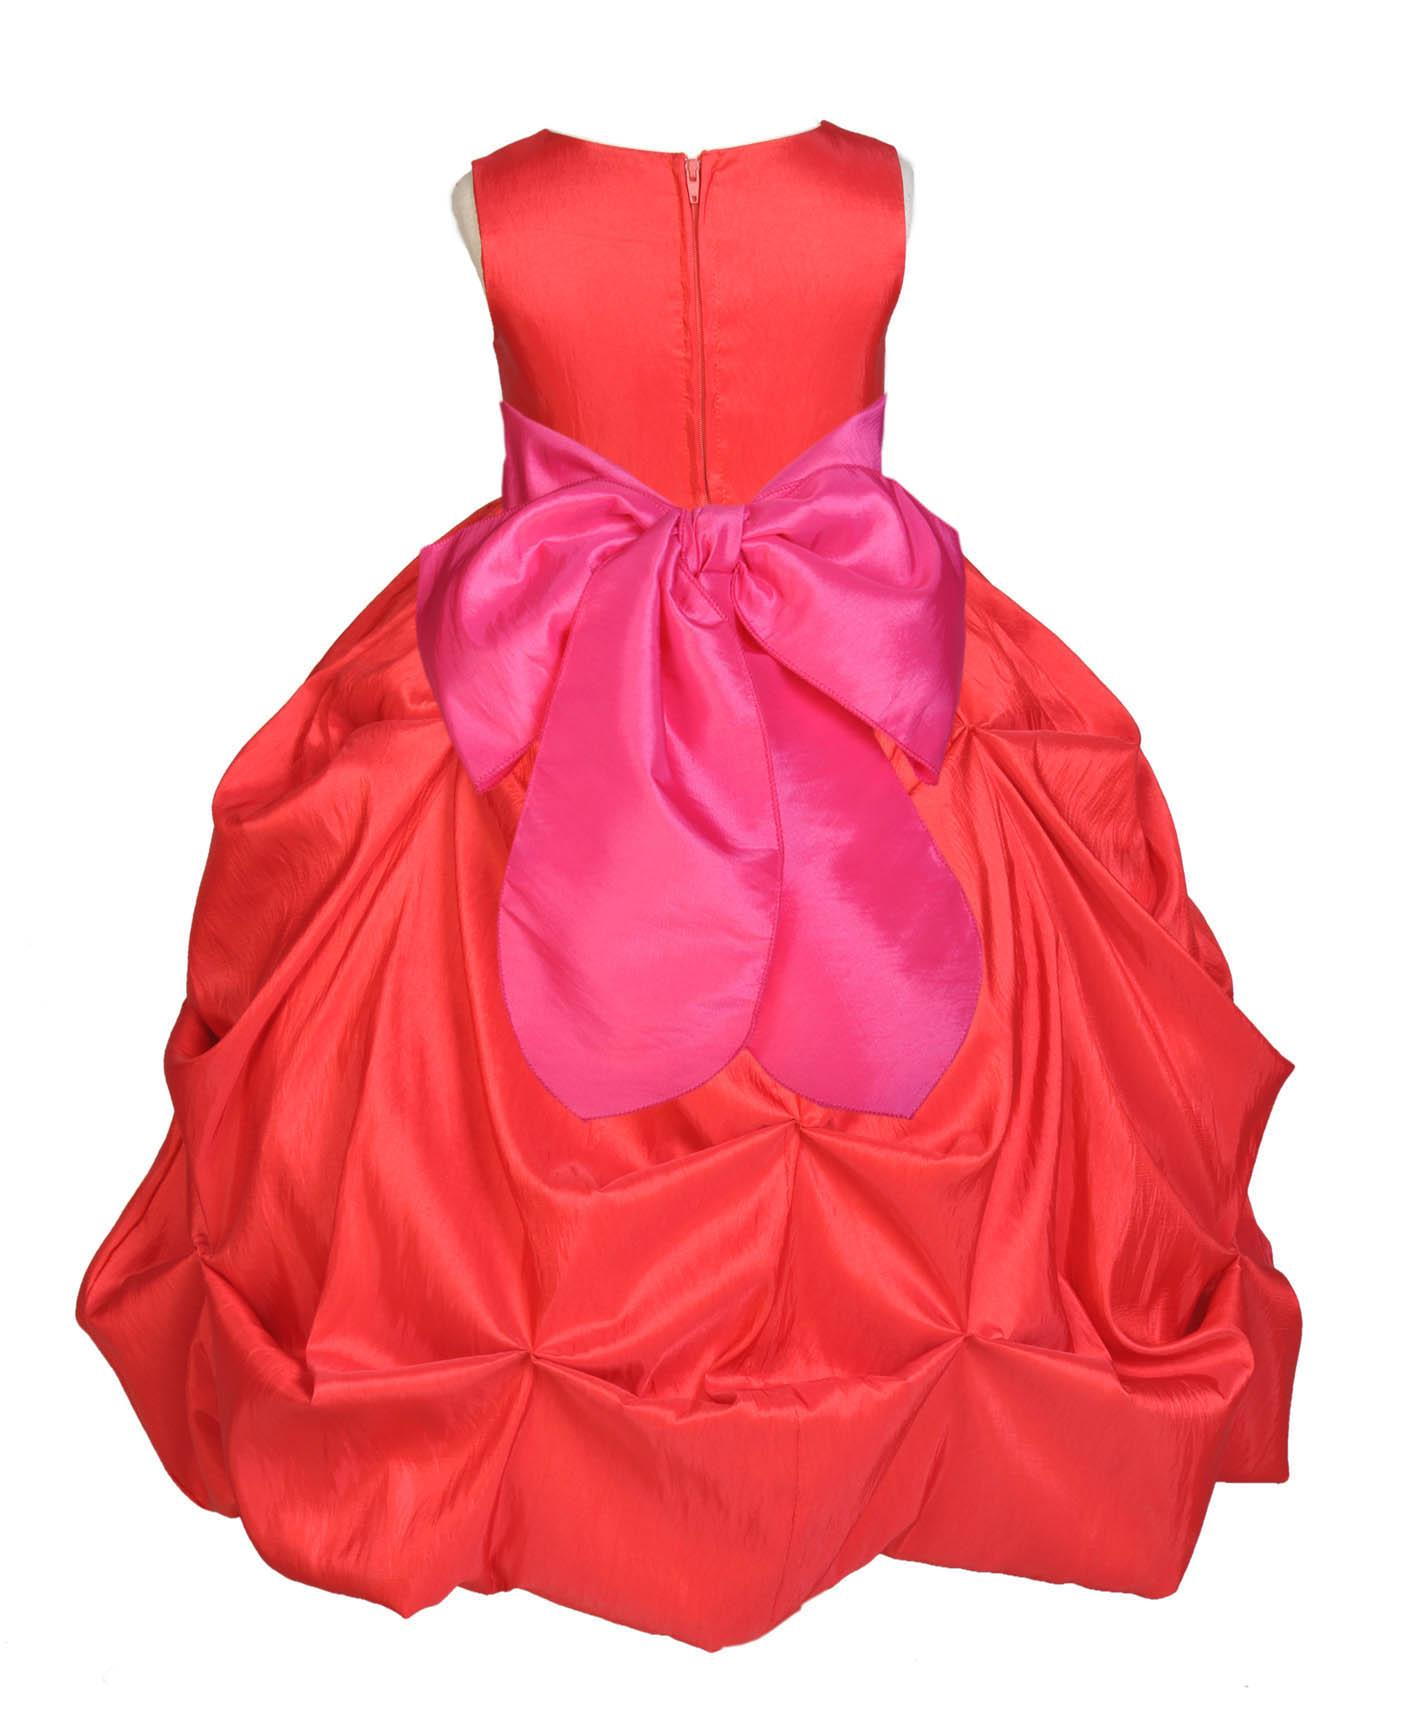 Ekidsbridal Taffeta Bubble Pick-up Red Flower Girl Dress Christmas Weddings Summer Easter Dress Special Occasions Pageant Toddler Girl's Clothing Holiday Bridal Baptism Junior Bridesmaid 301S